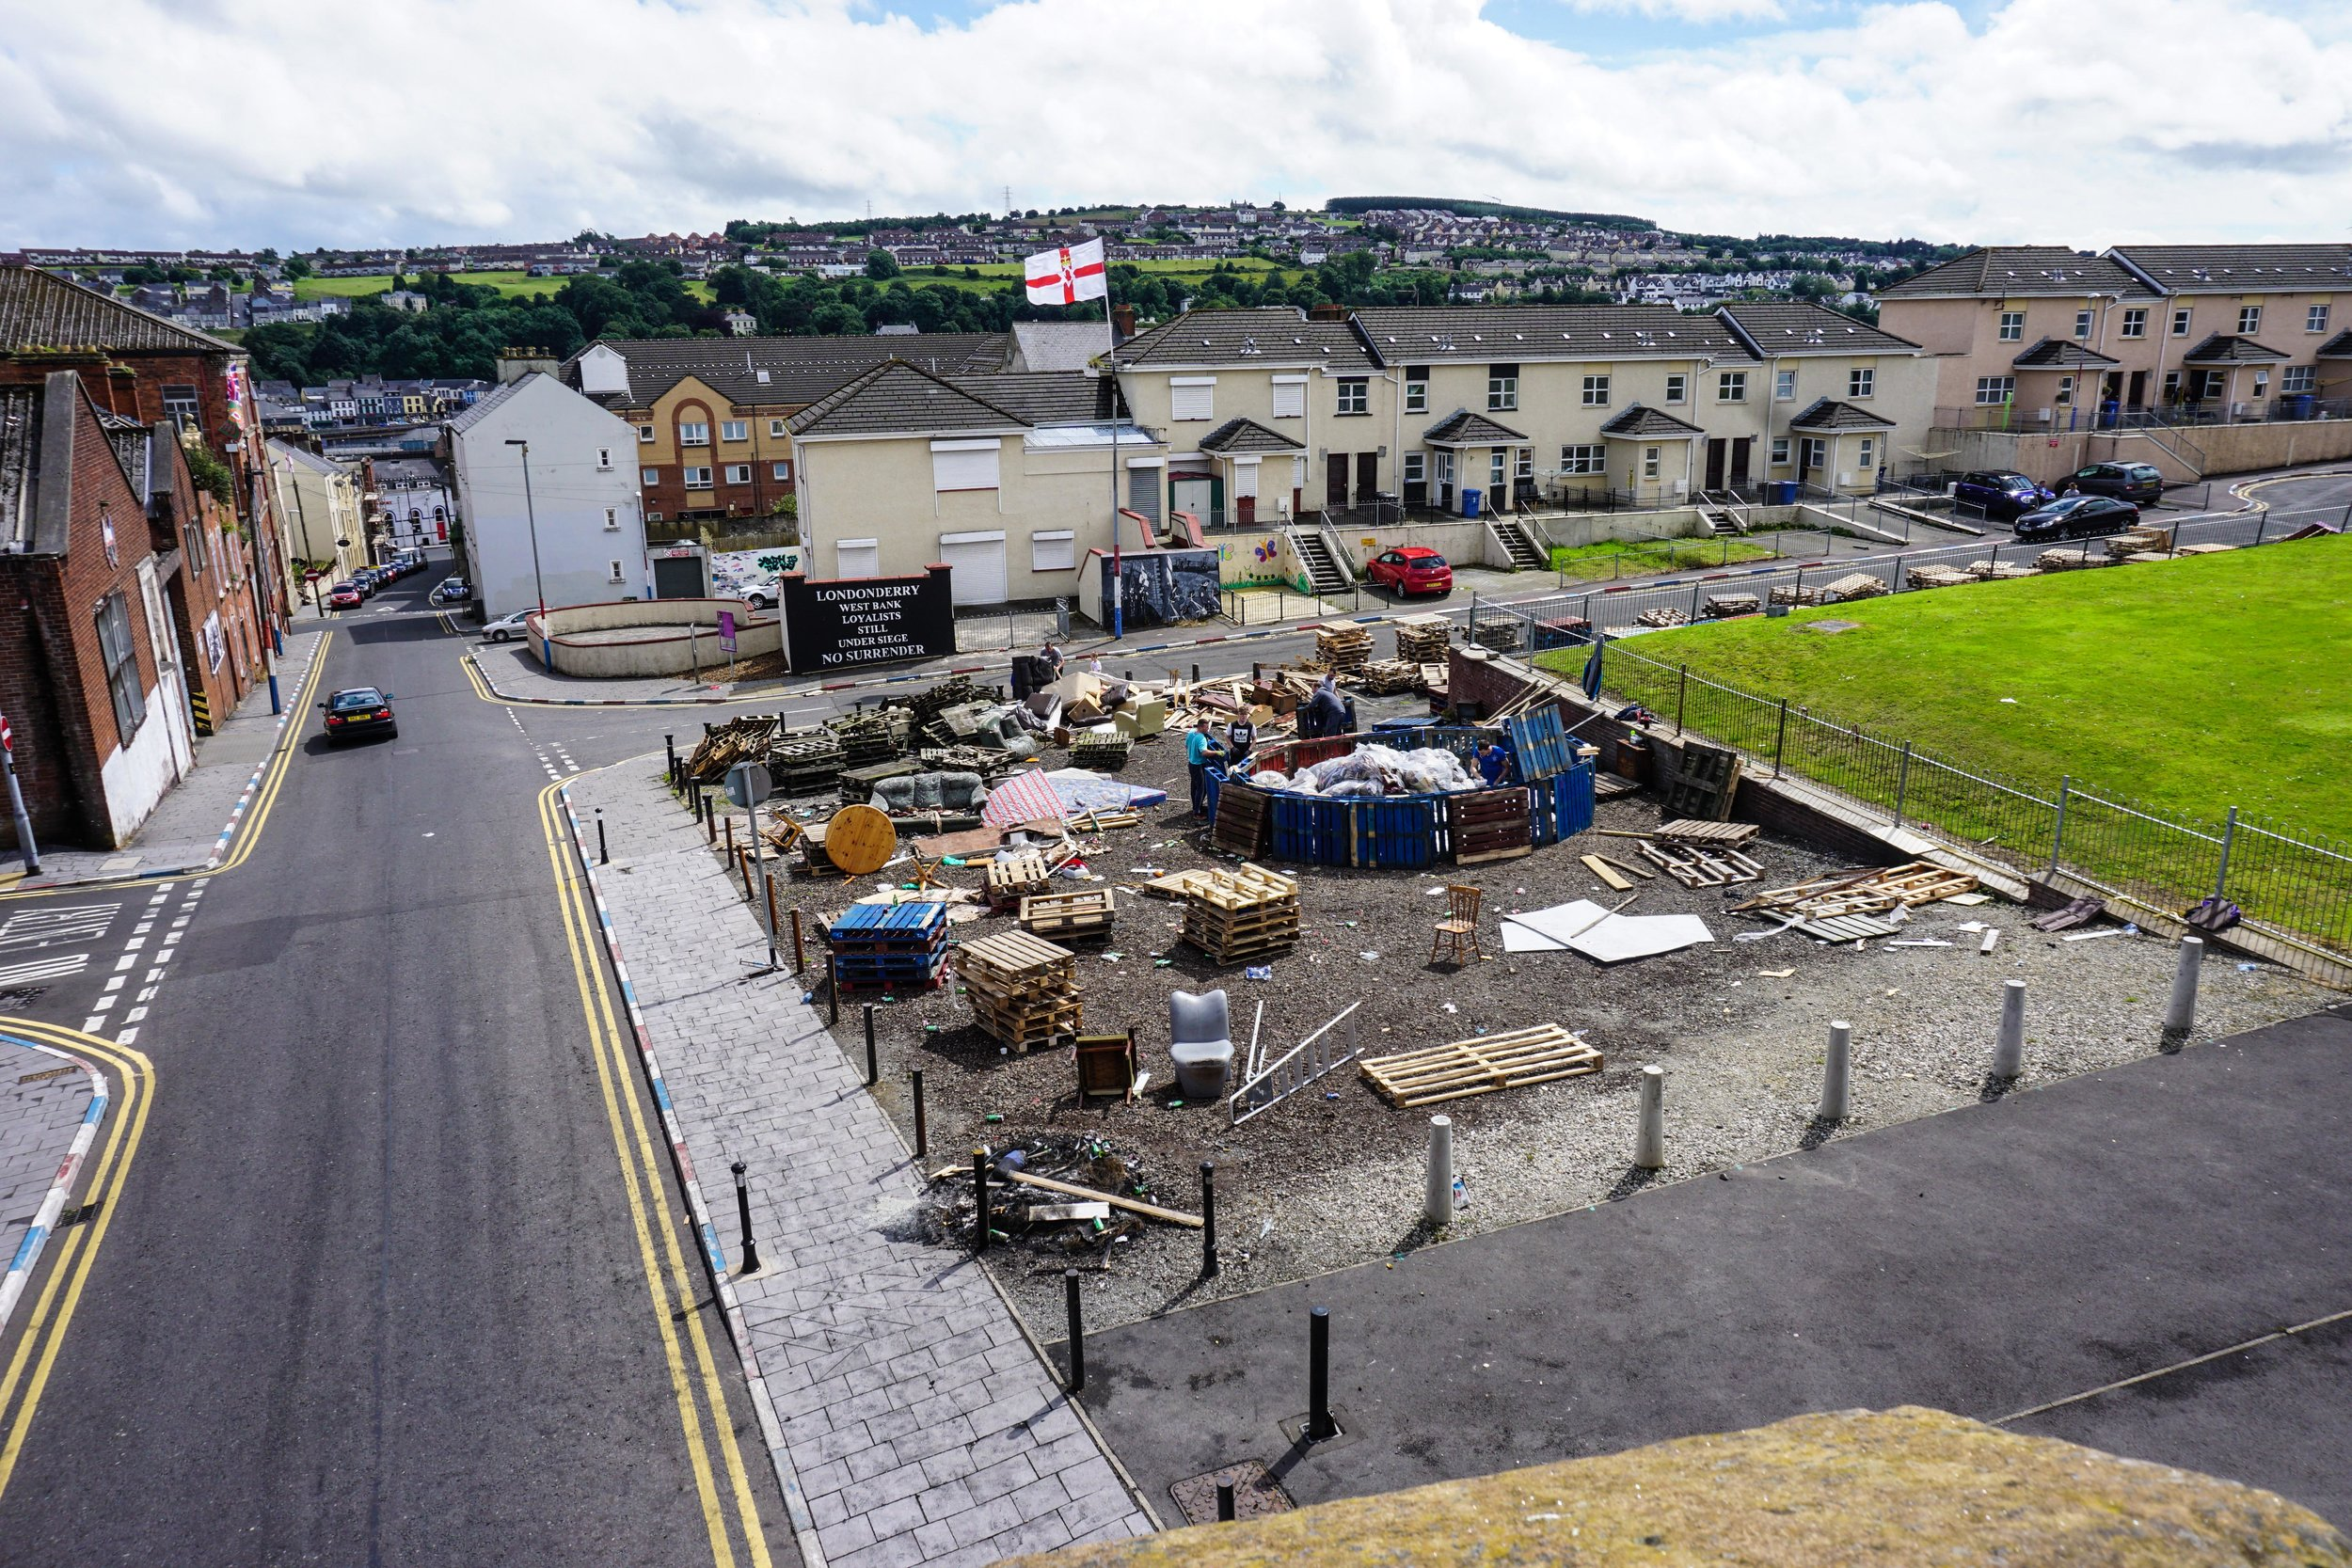 Pyre being built in Derry